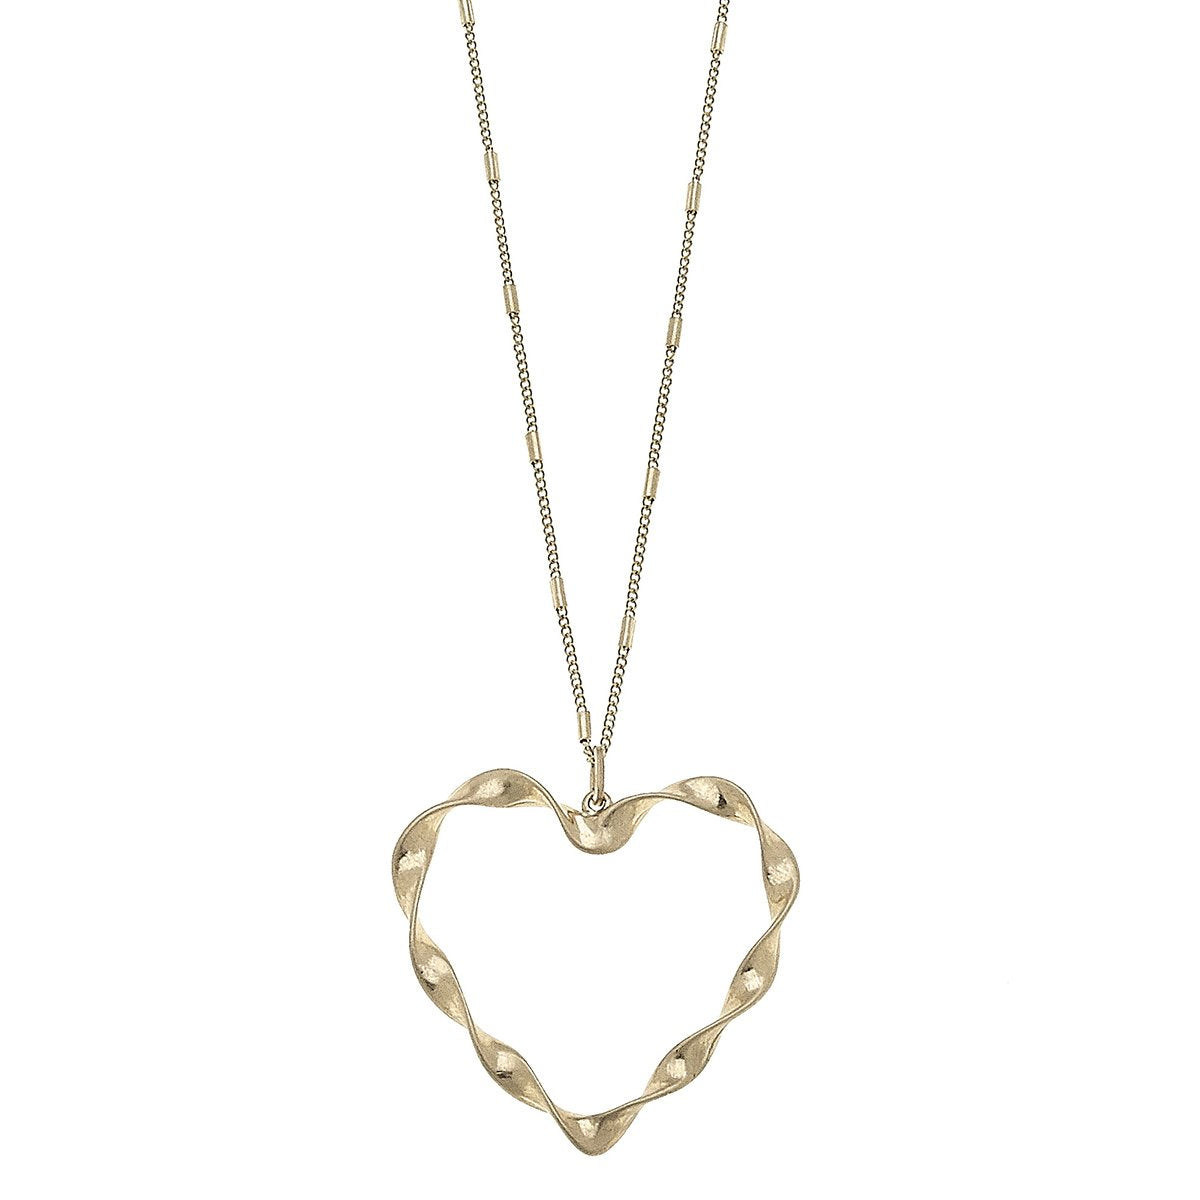 Heart Pendant Necklace in Worn Gold